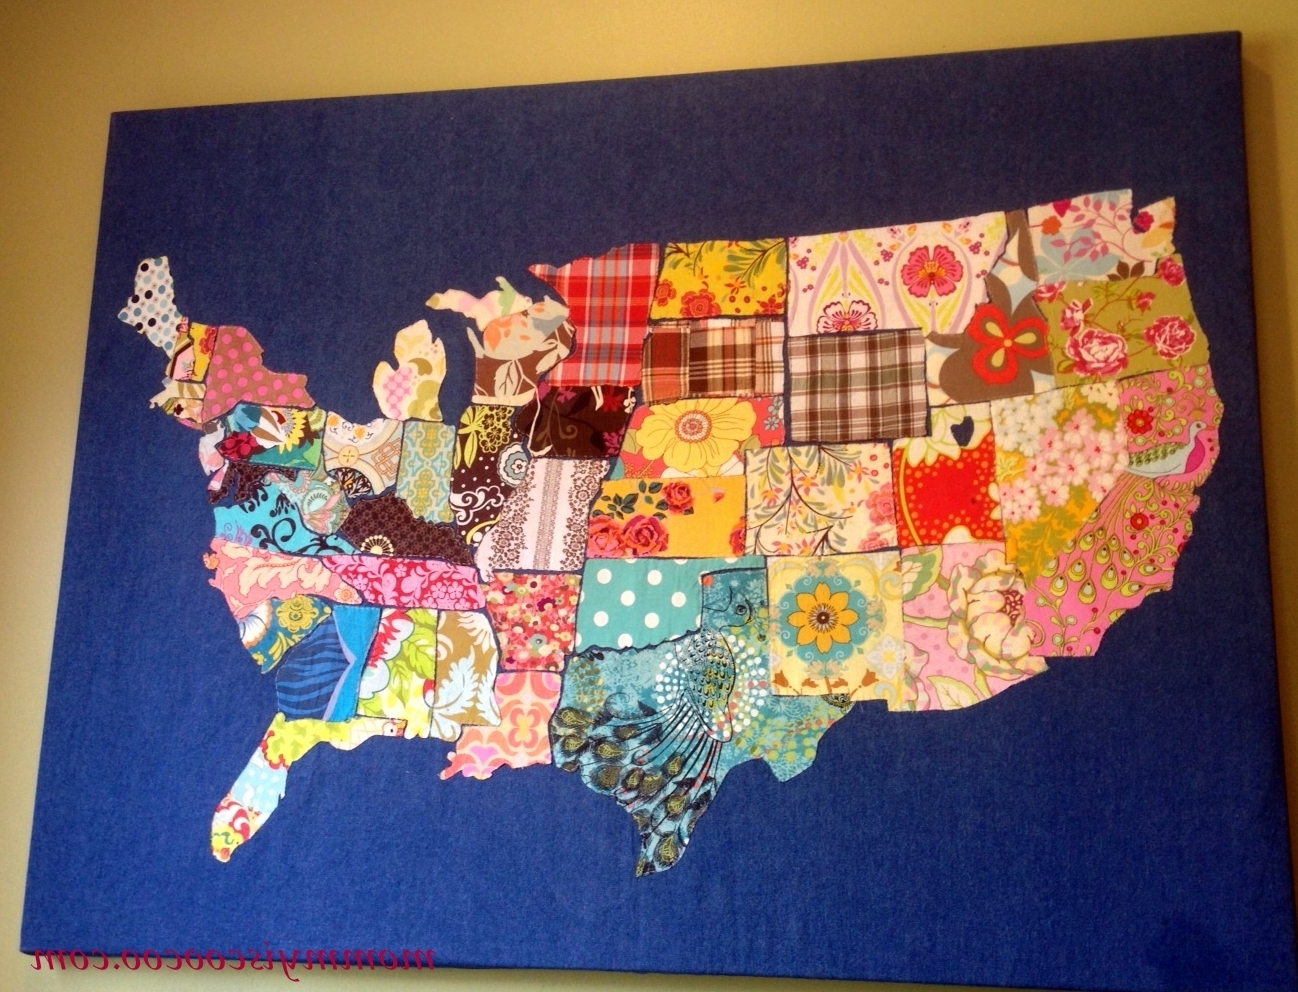 Fabrics, Fabric Remnants And Craft (View 8 of 15)